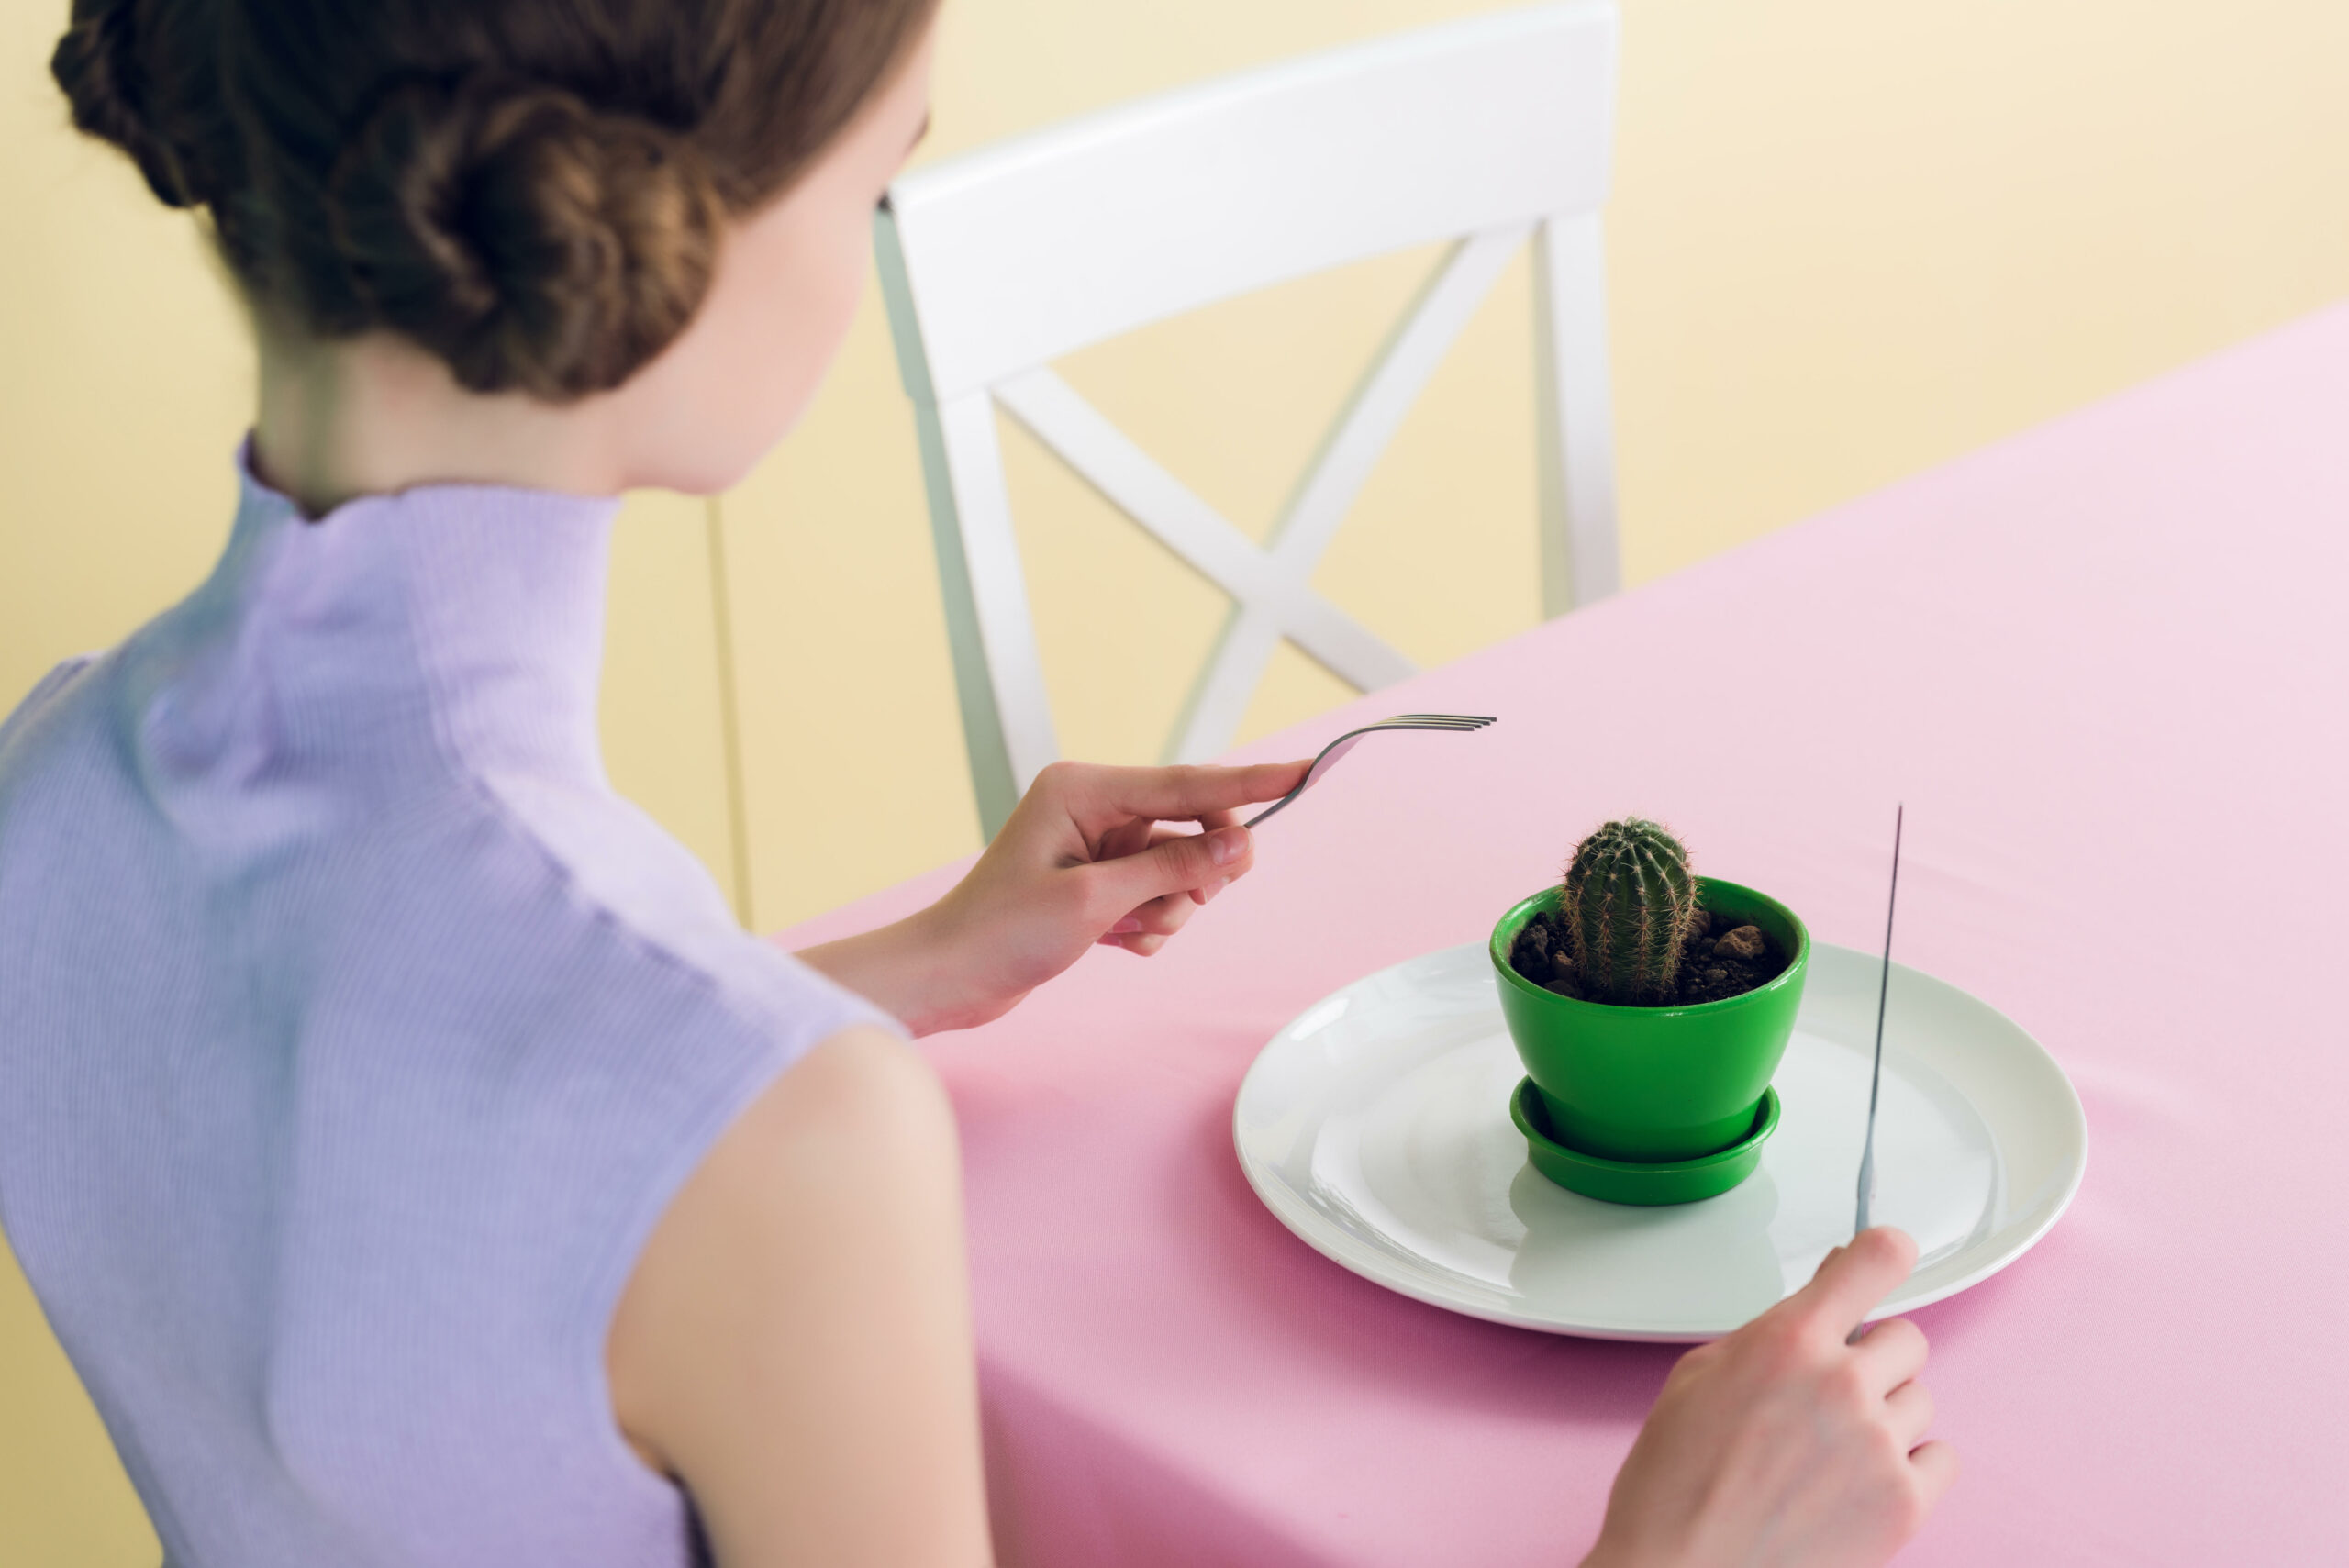 Eating a cactus